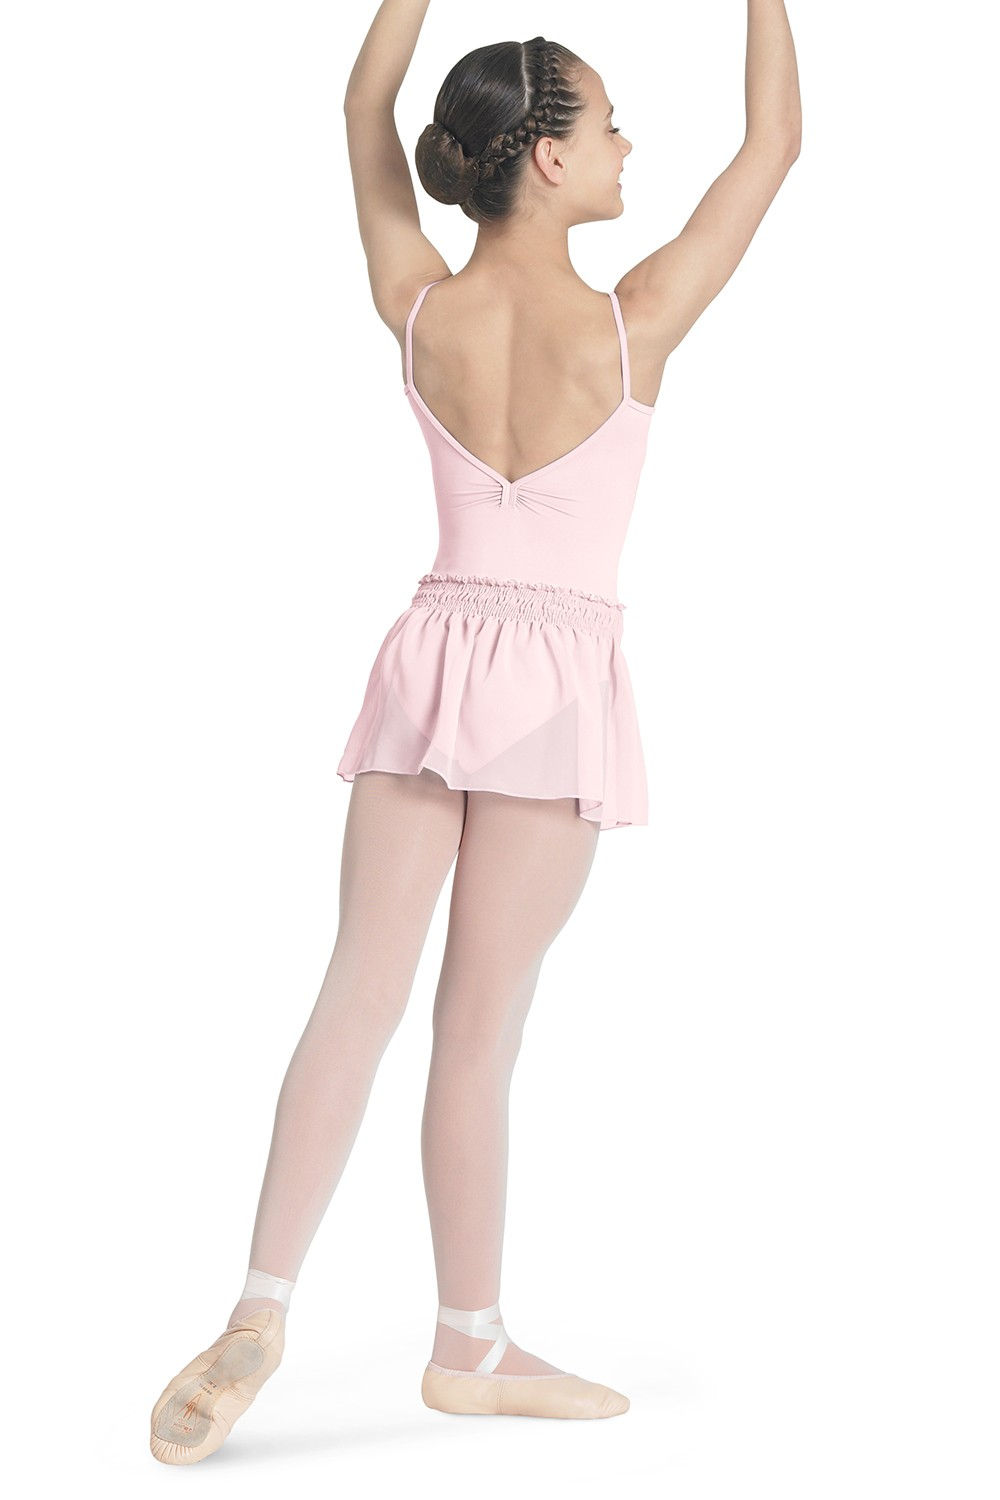 Camisole Pinched Back Leotard Children's Dance Leotards